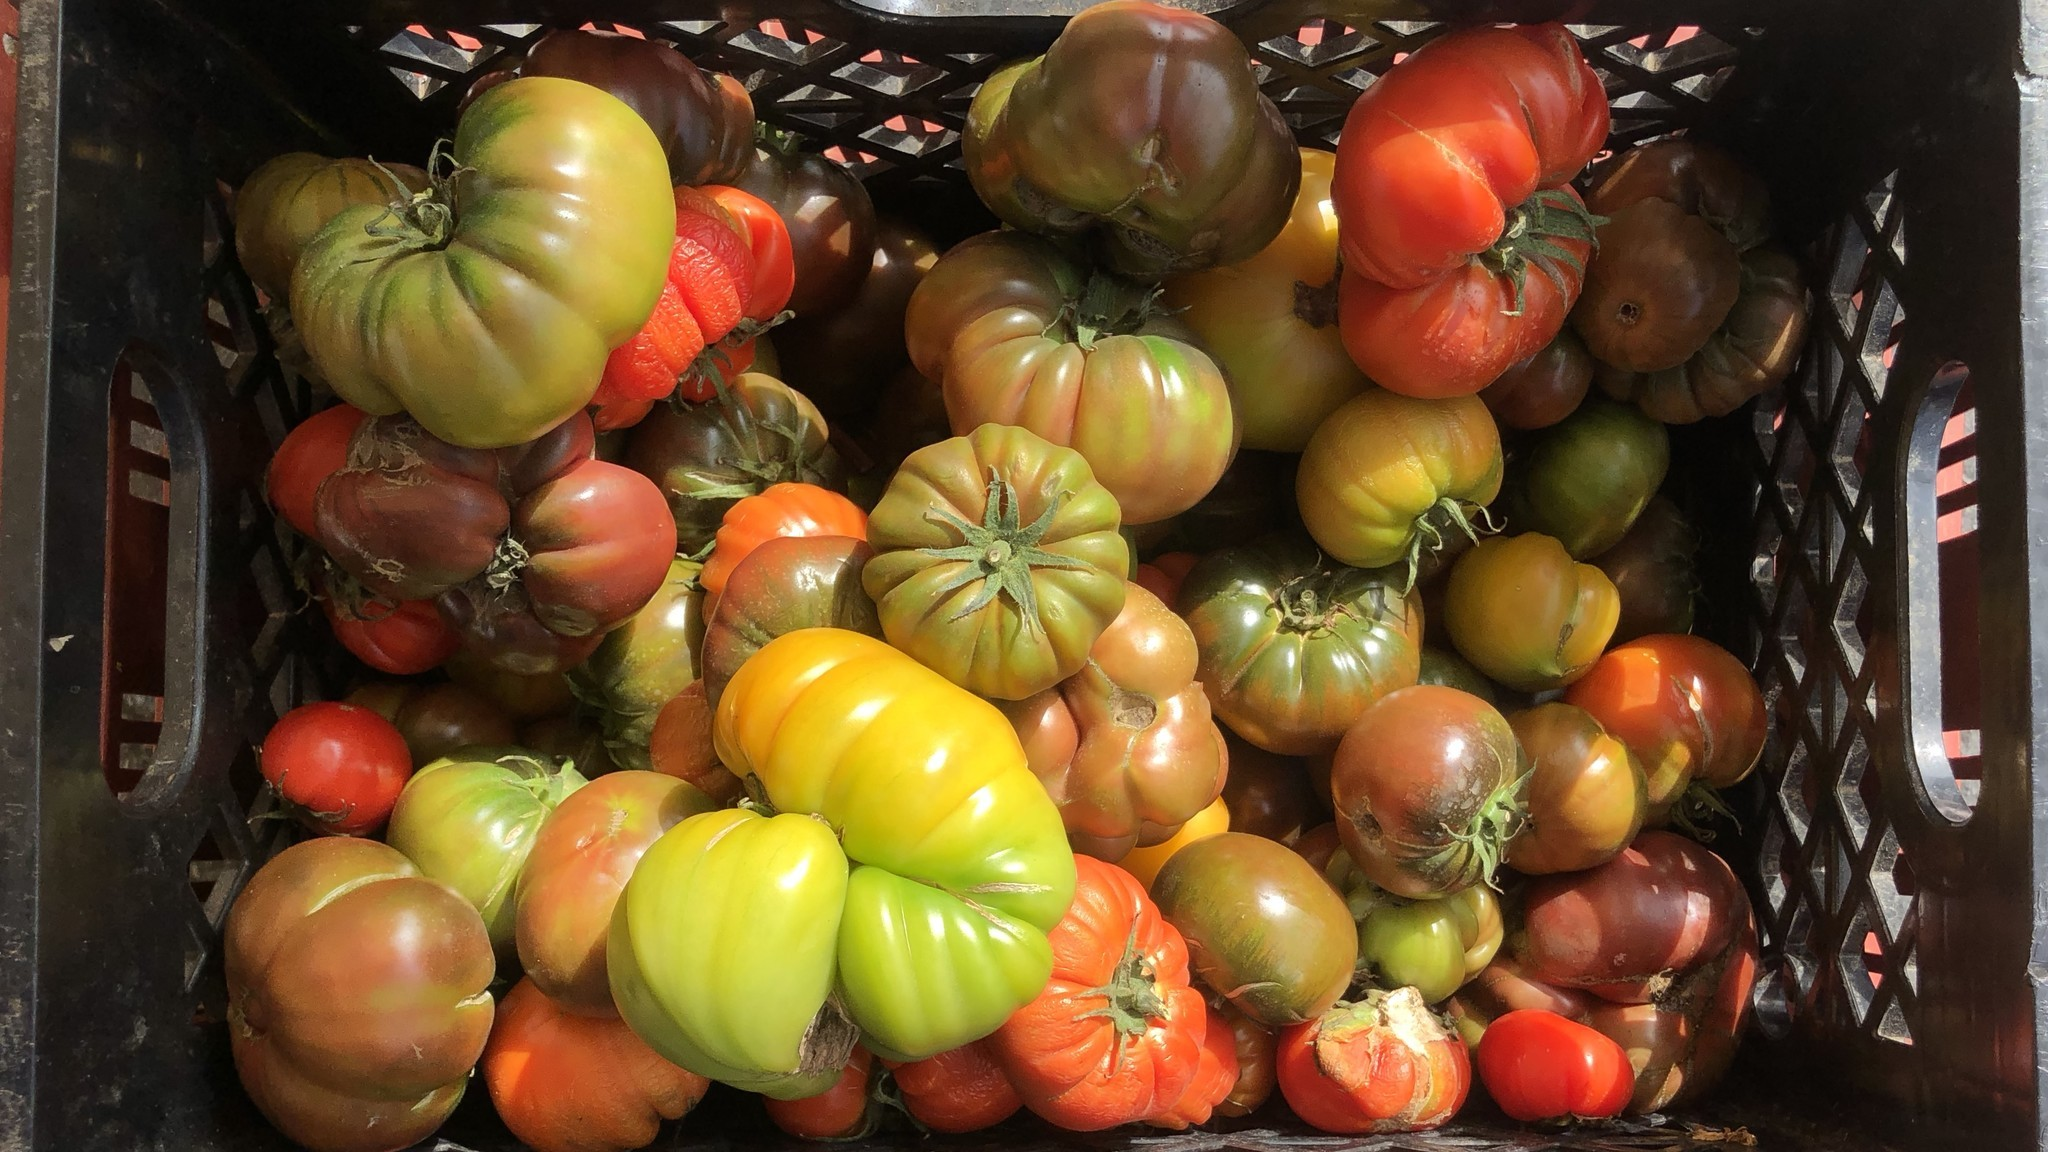 Gazpacho, lasagna and other great ideas for tomatoes, now in season